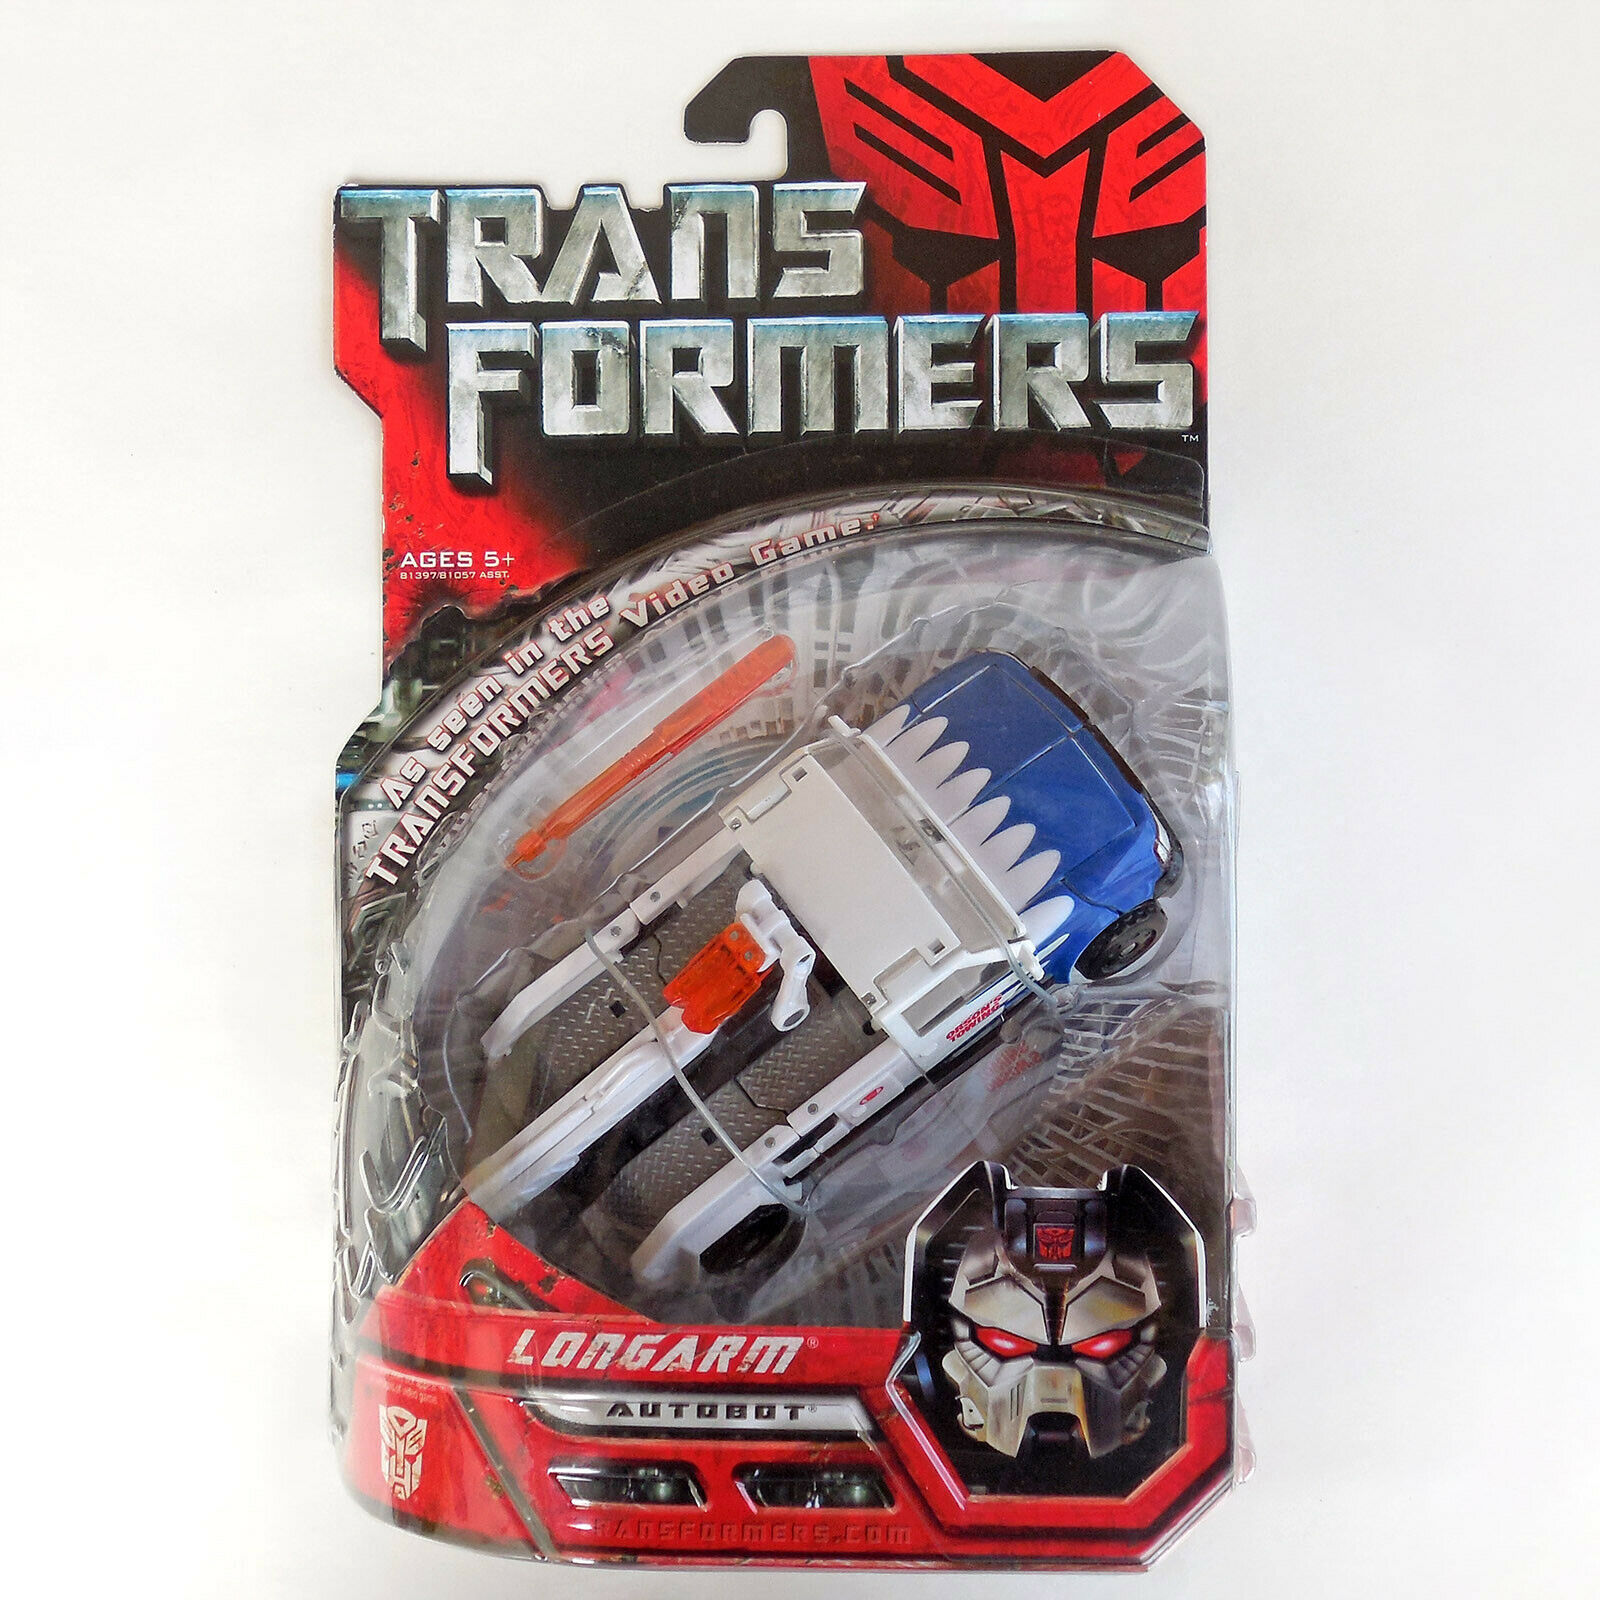 Transformers Movie Longarm Deluxe Class Action Figure